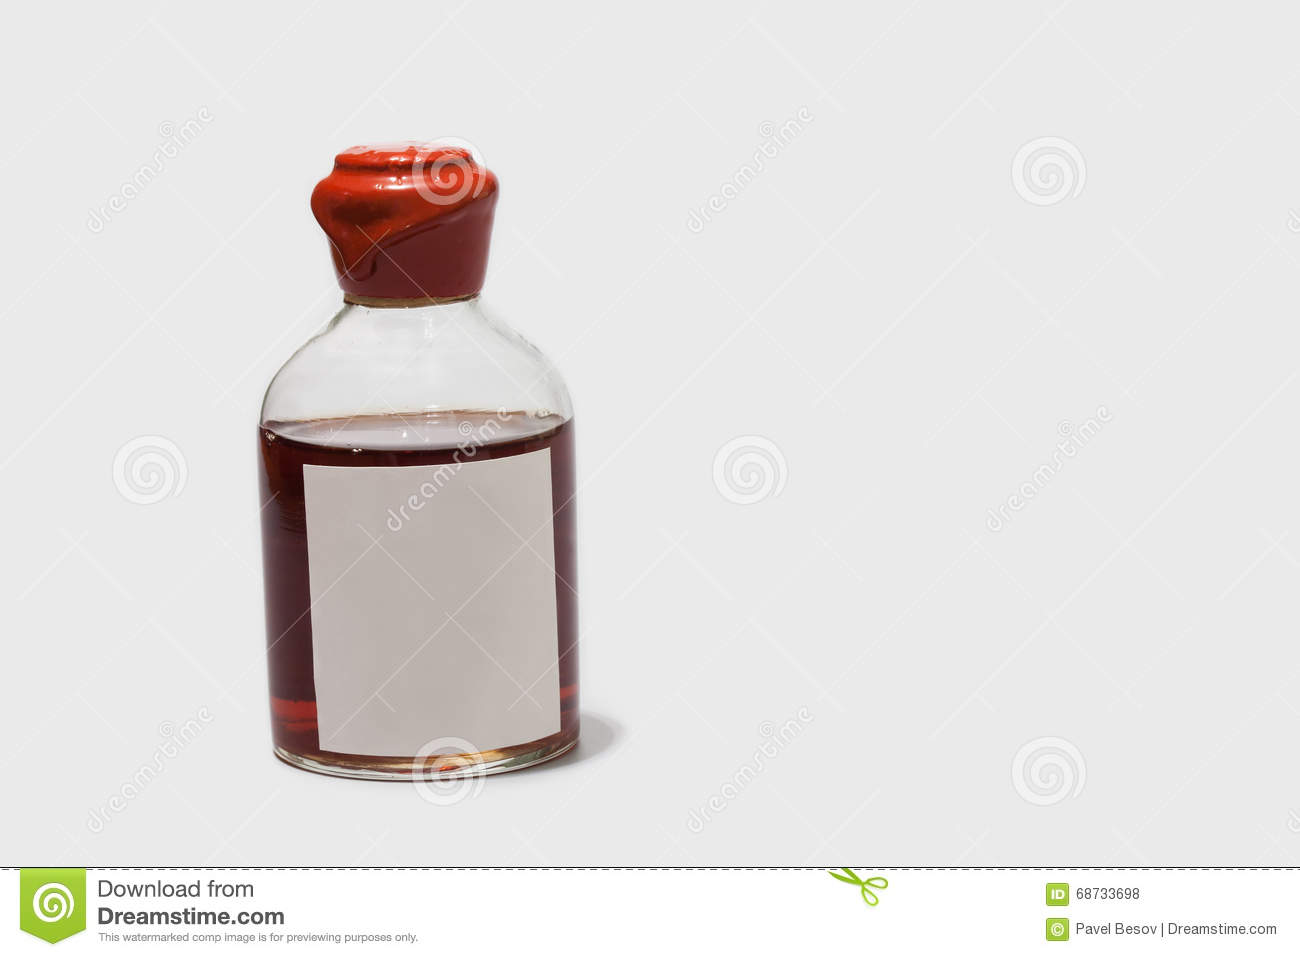 vintage bottle with red wax cork, brown booze and blank label. retro